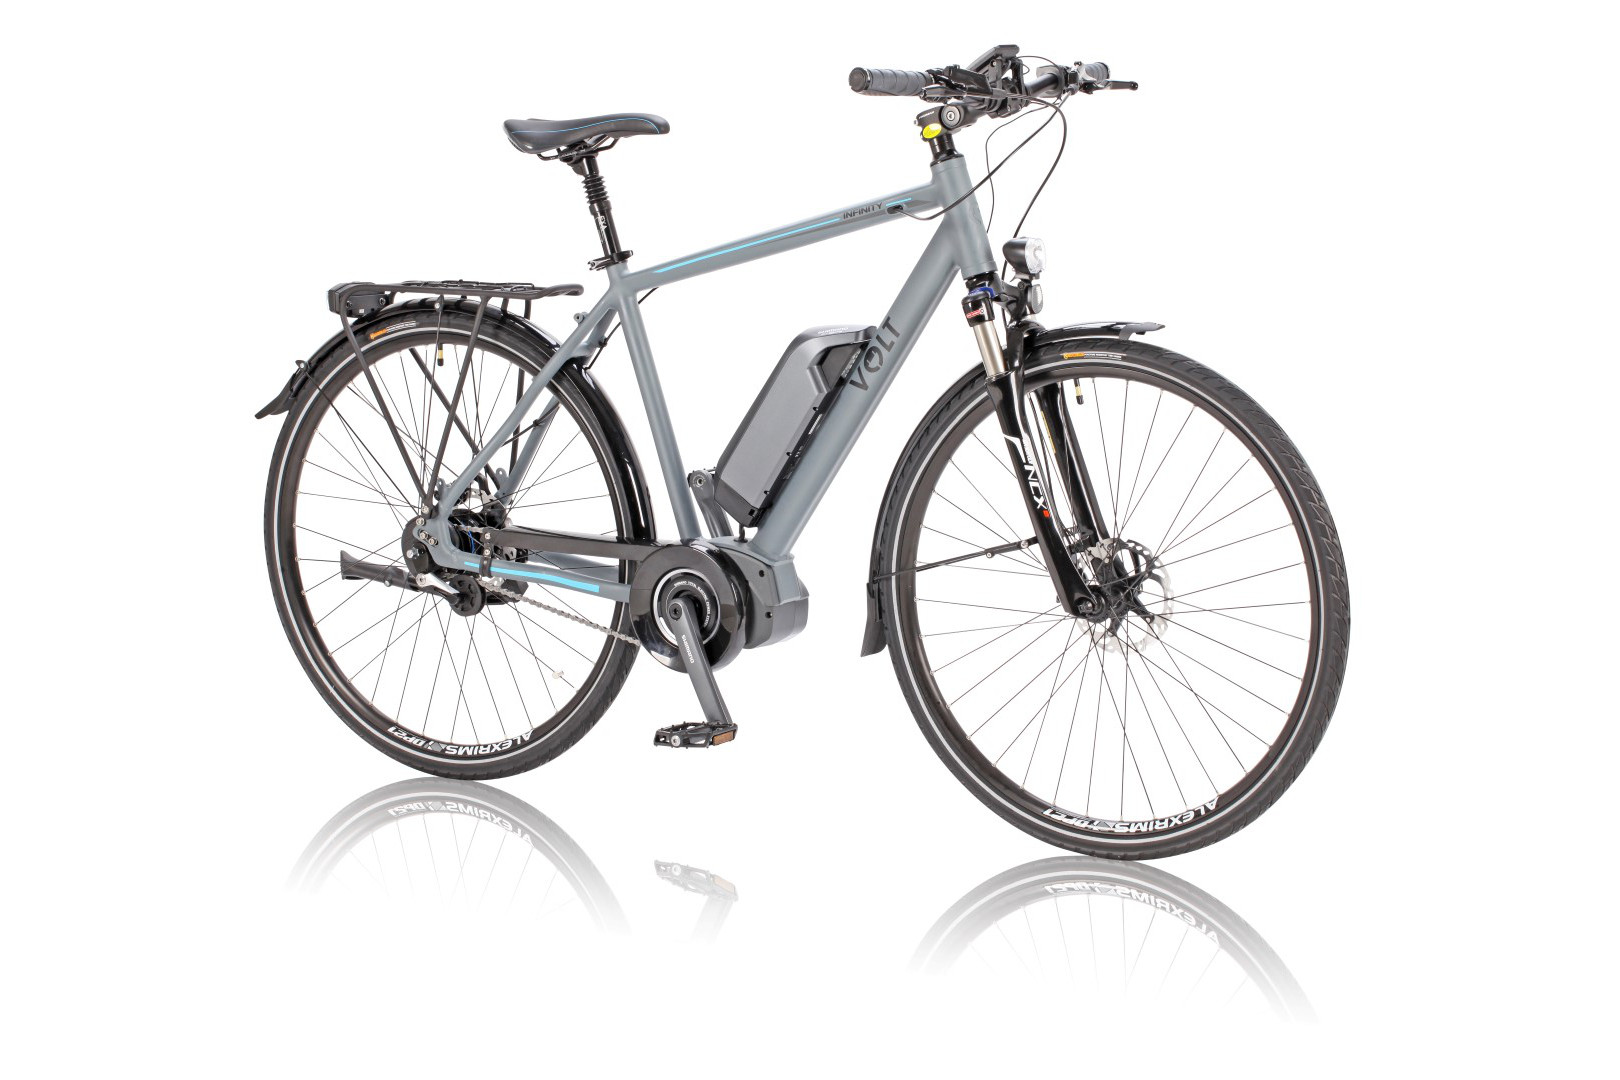 Infinity Shimano STEPS e-bike from VOLT™